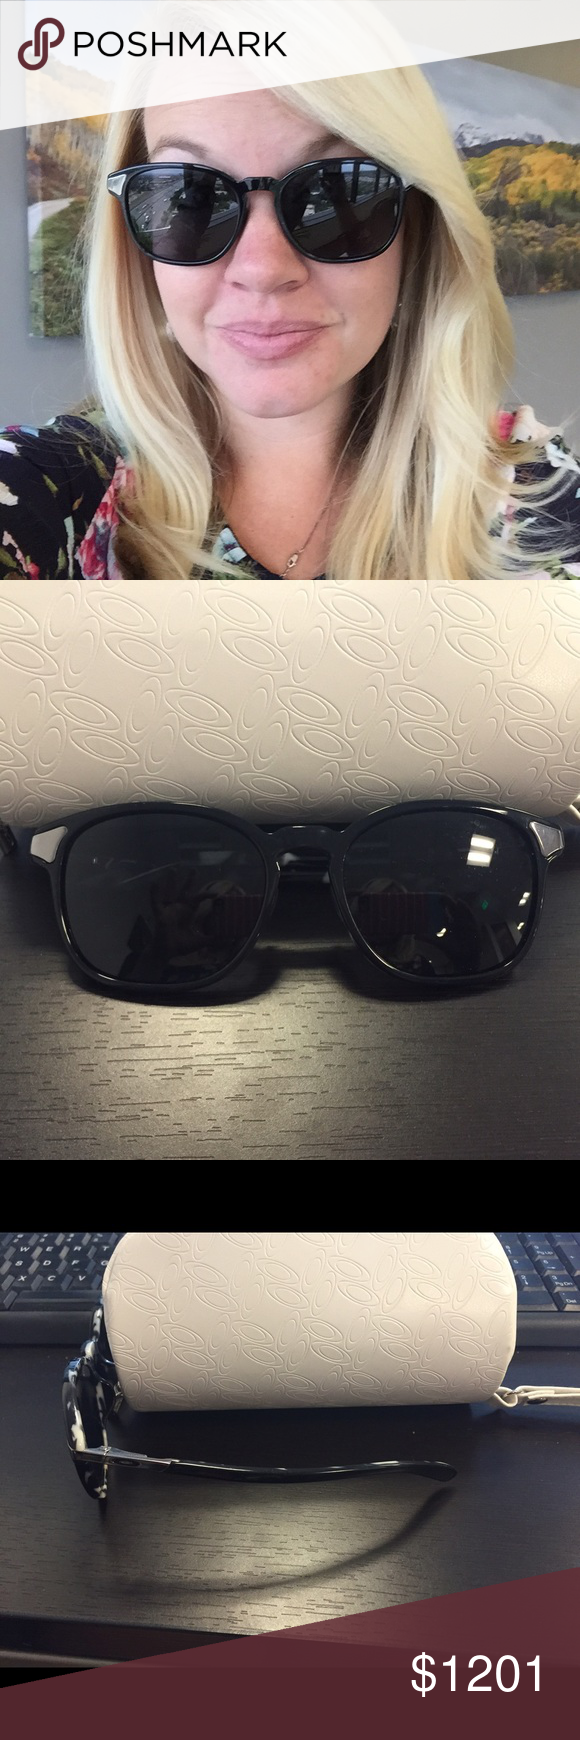 8be3df7ac1 Black with black and white tortoise shell design inside. Oakley glasses  case included! Oakley Accessories Sunglasses. Beautiful women s OAKLEY  RINGER ...